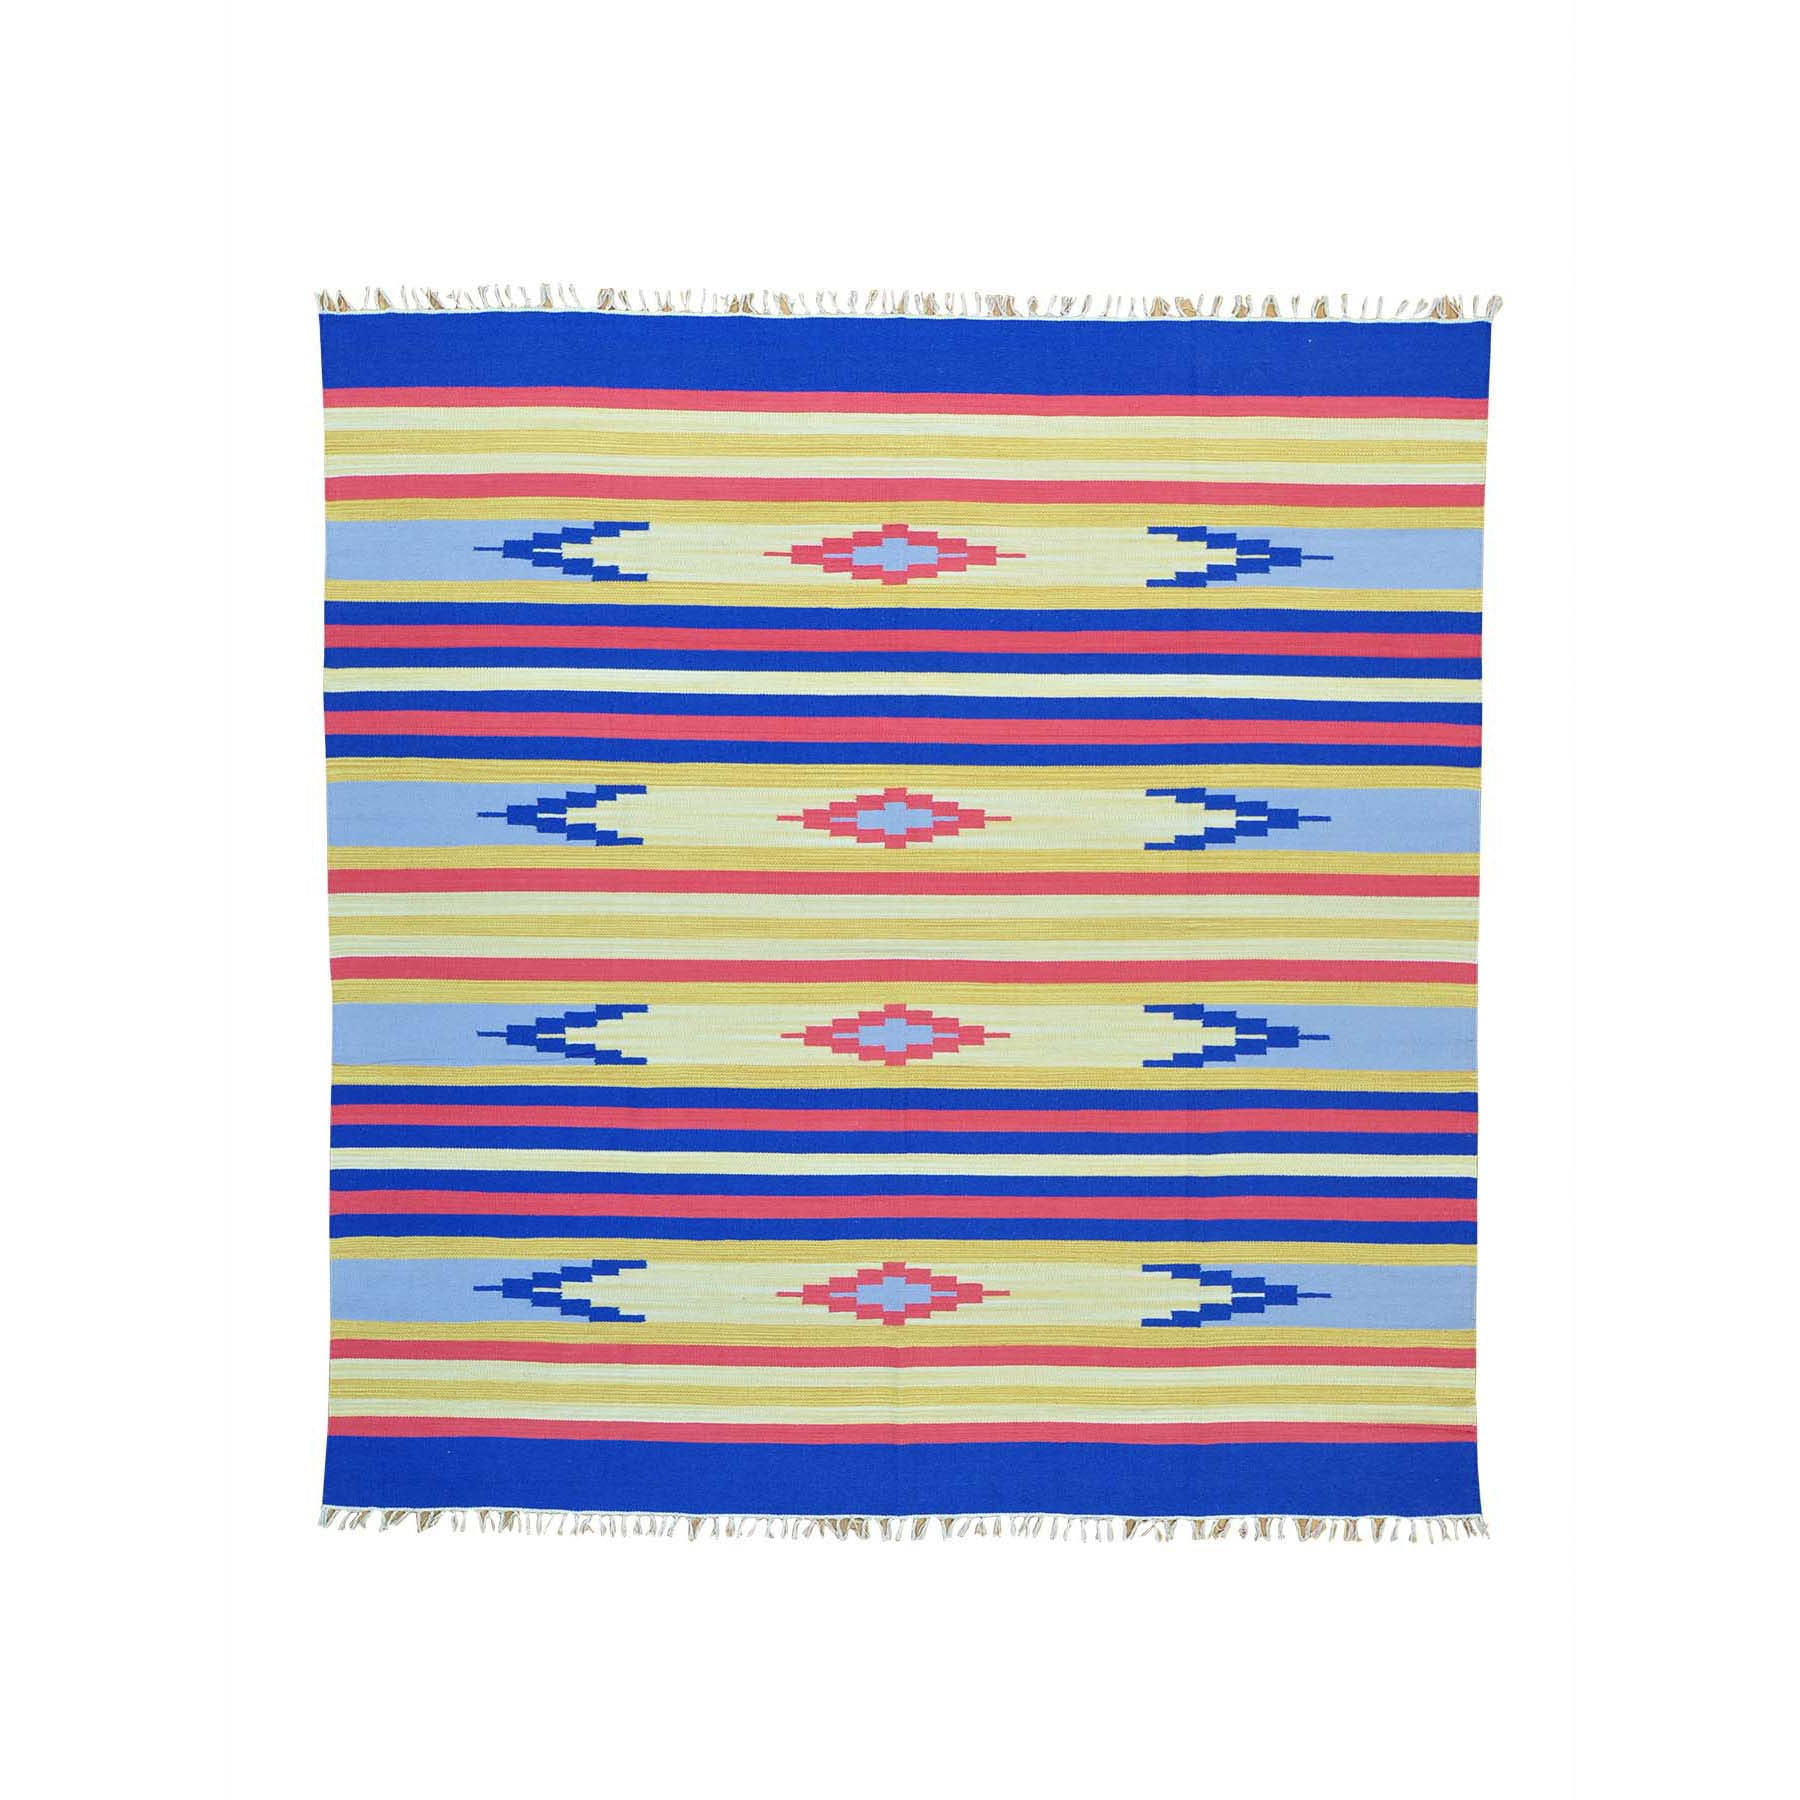 "Handmade Flat Weave Square Rug > Design# SH26054 > Size: 8'-0"" x 8'-0"" [ONLINE ONLY]"